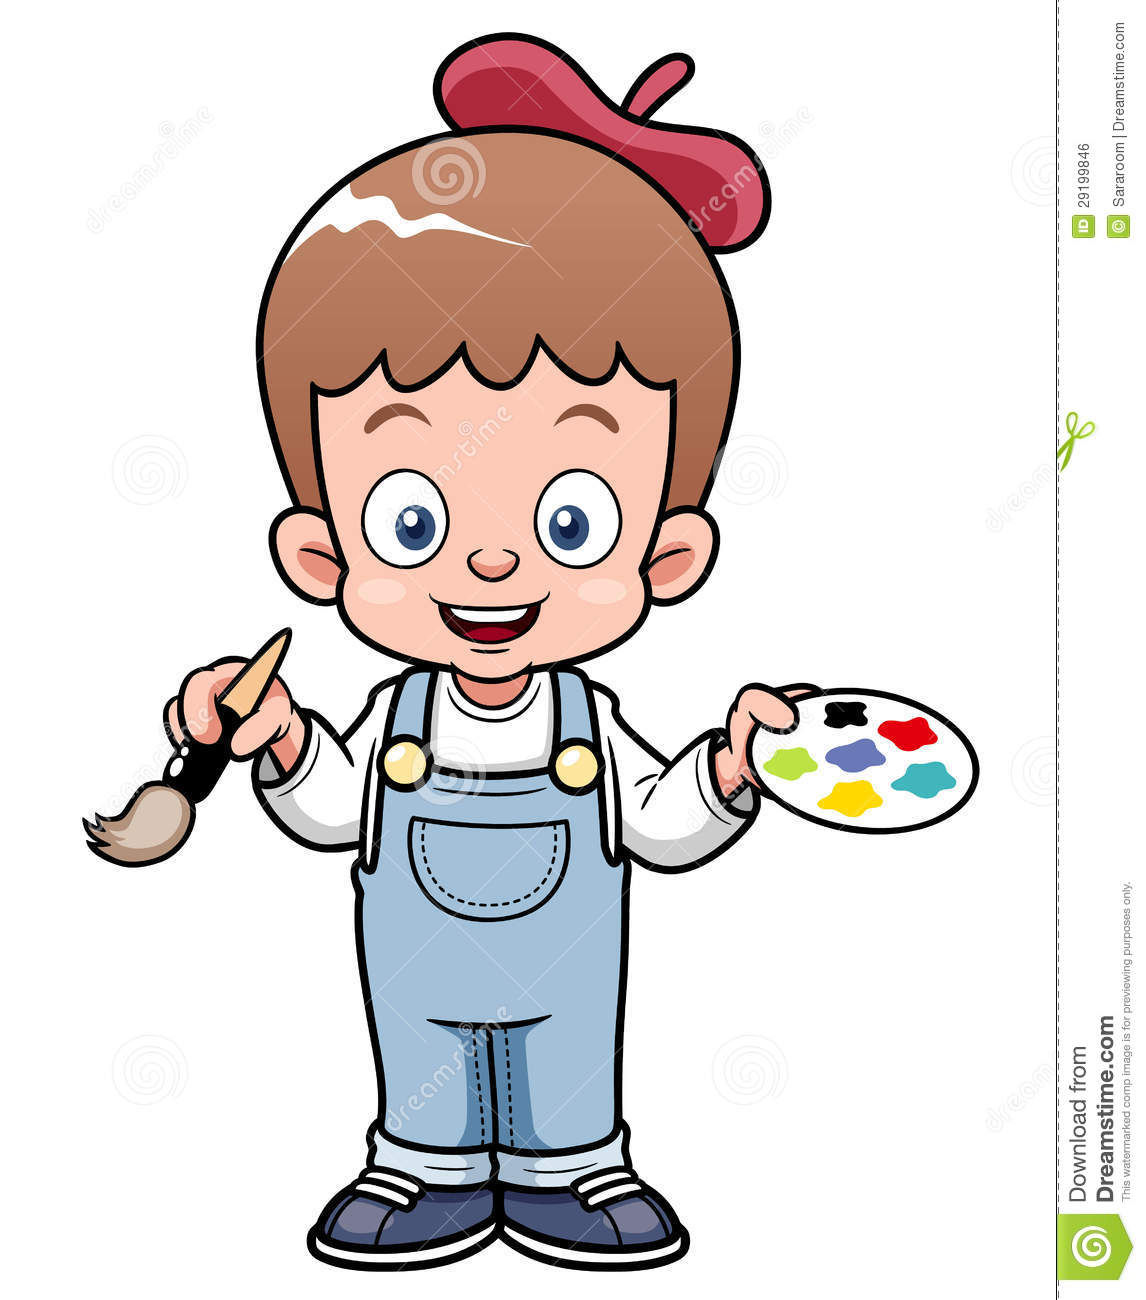 Cartoon Artist Boy Royalty Free Stock Image  Image: 29199846